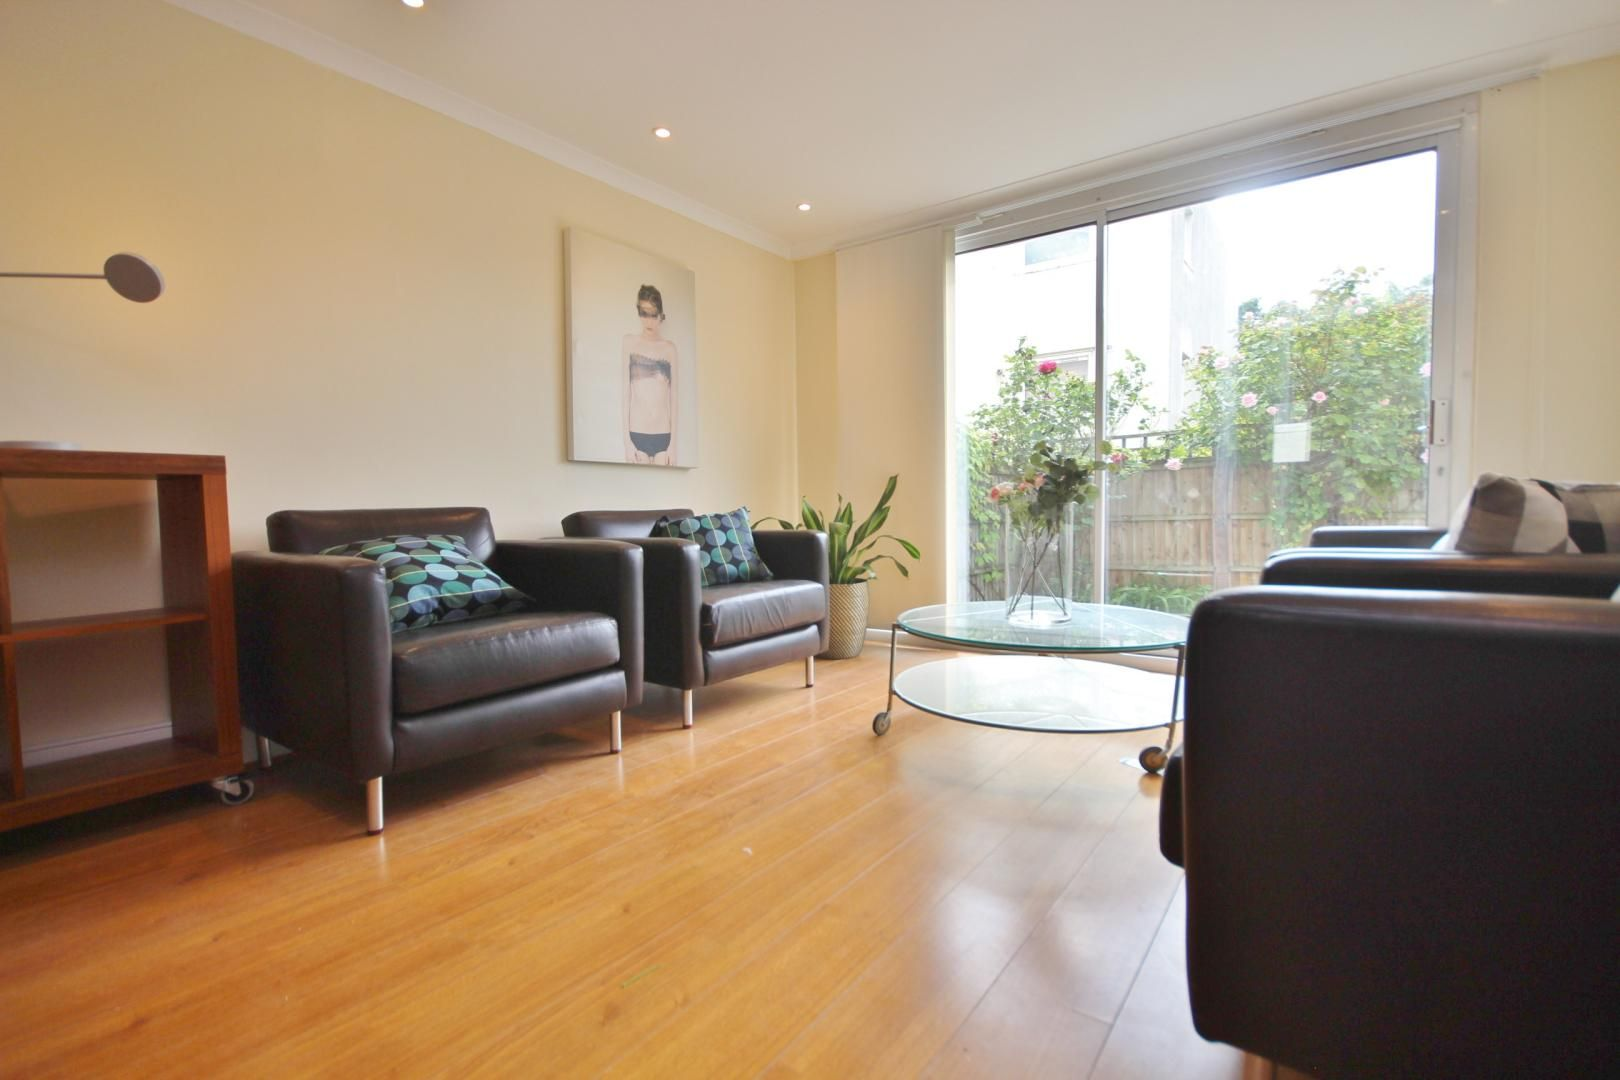 3 bed flat to rent in Barleycorn Way, E14